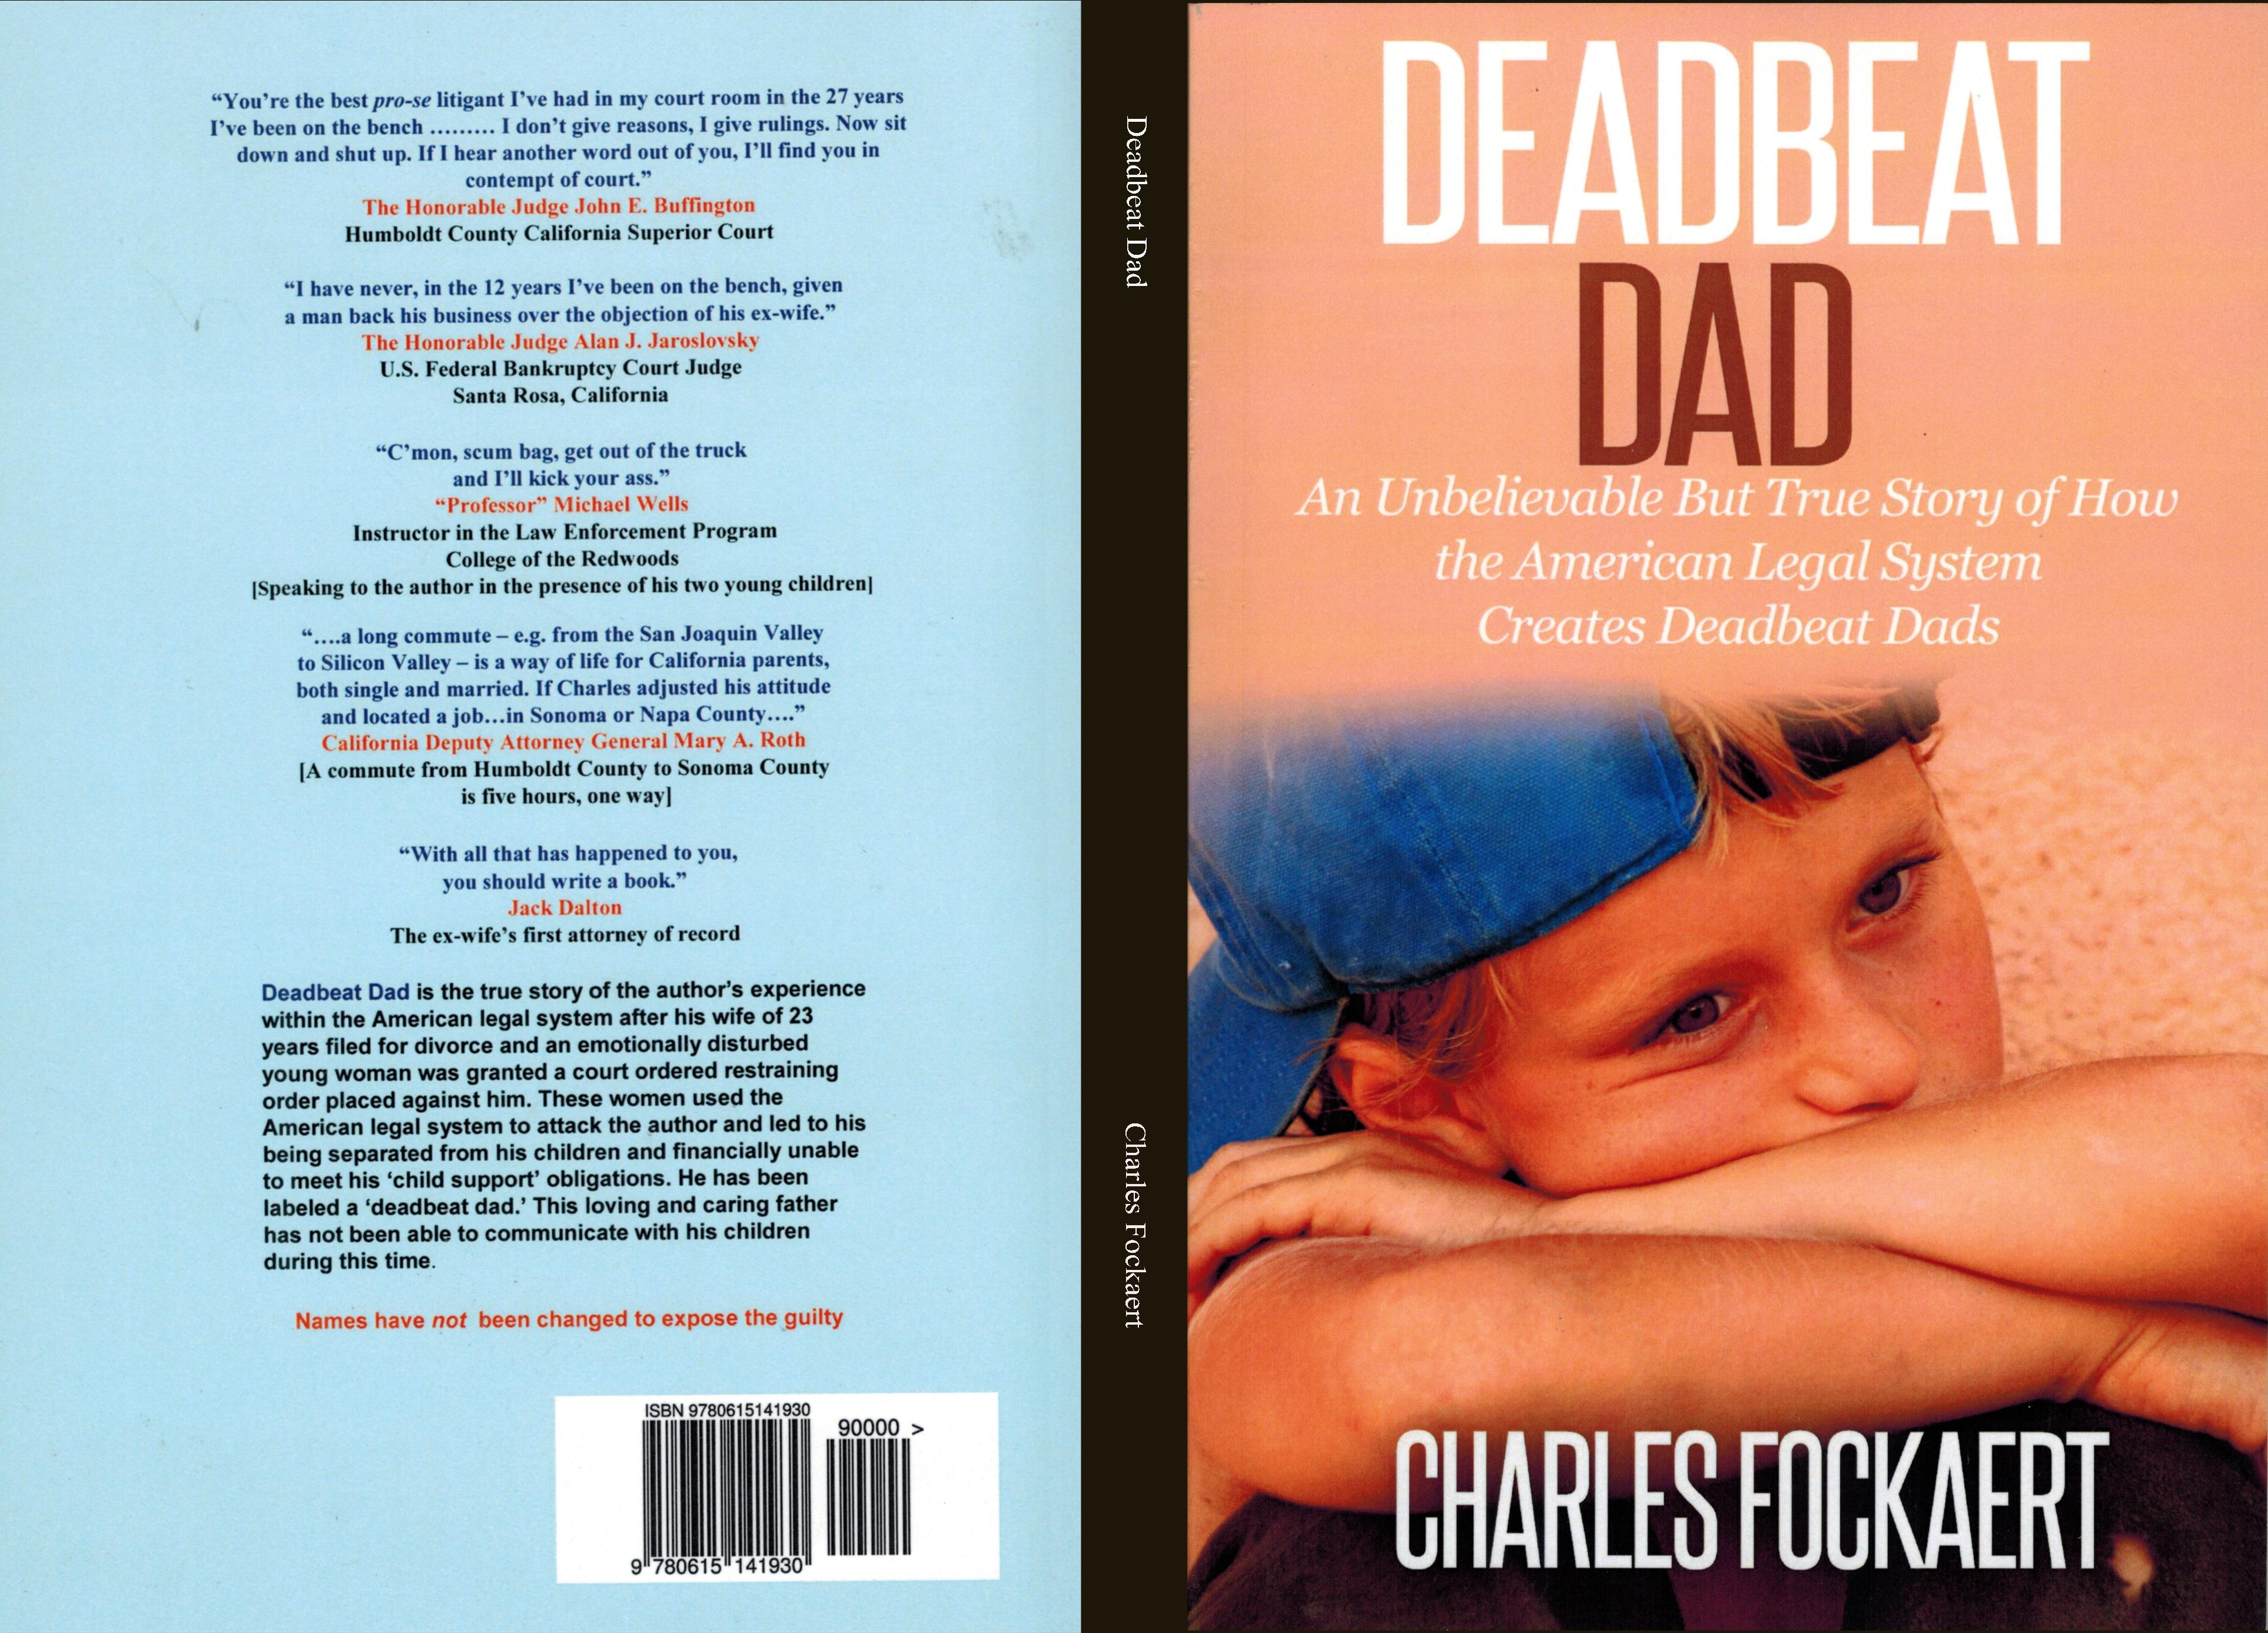 Deadbeat Dad cover image